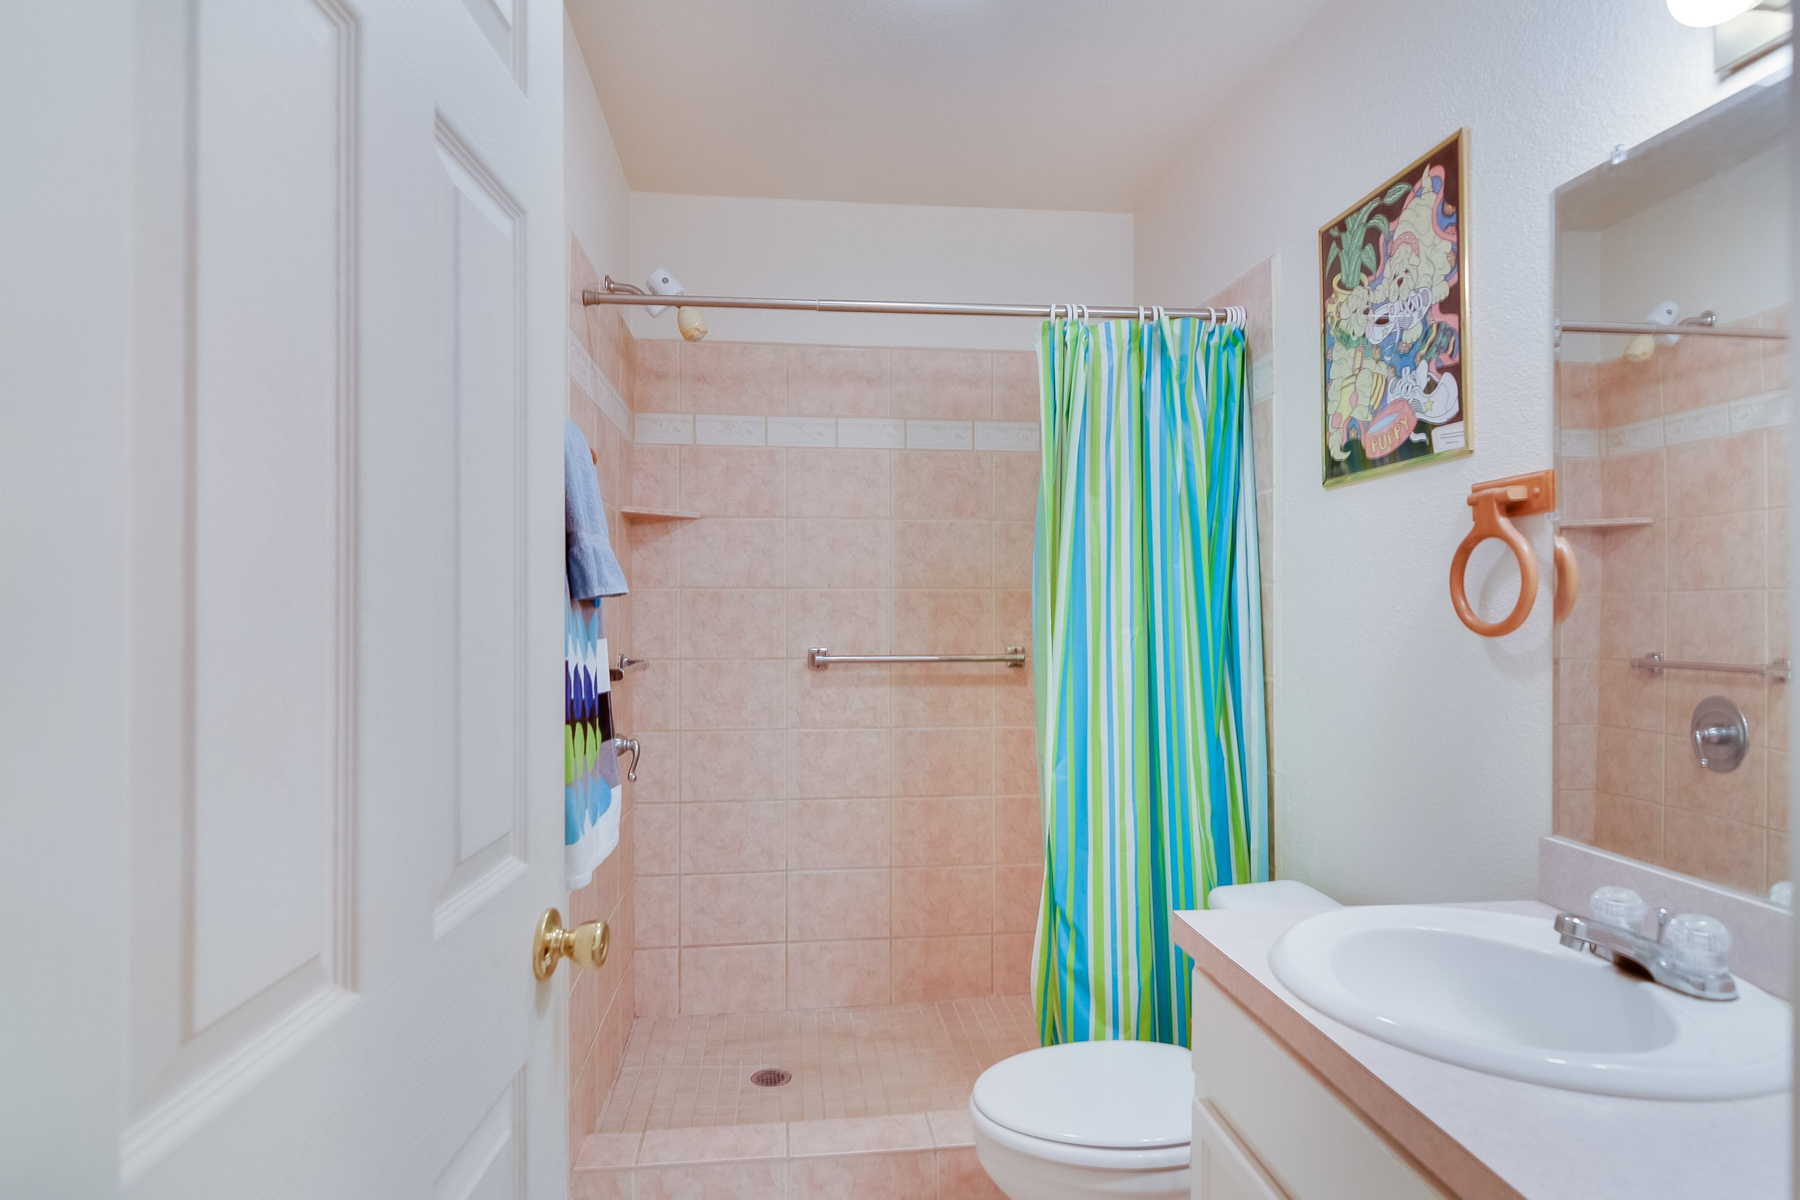 Additional photo for property listing at Beautiful Condo in Boerne Village Condominiums 121 S Plant Ave 502 Boerne, Texas 78006 United States